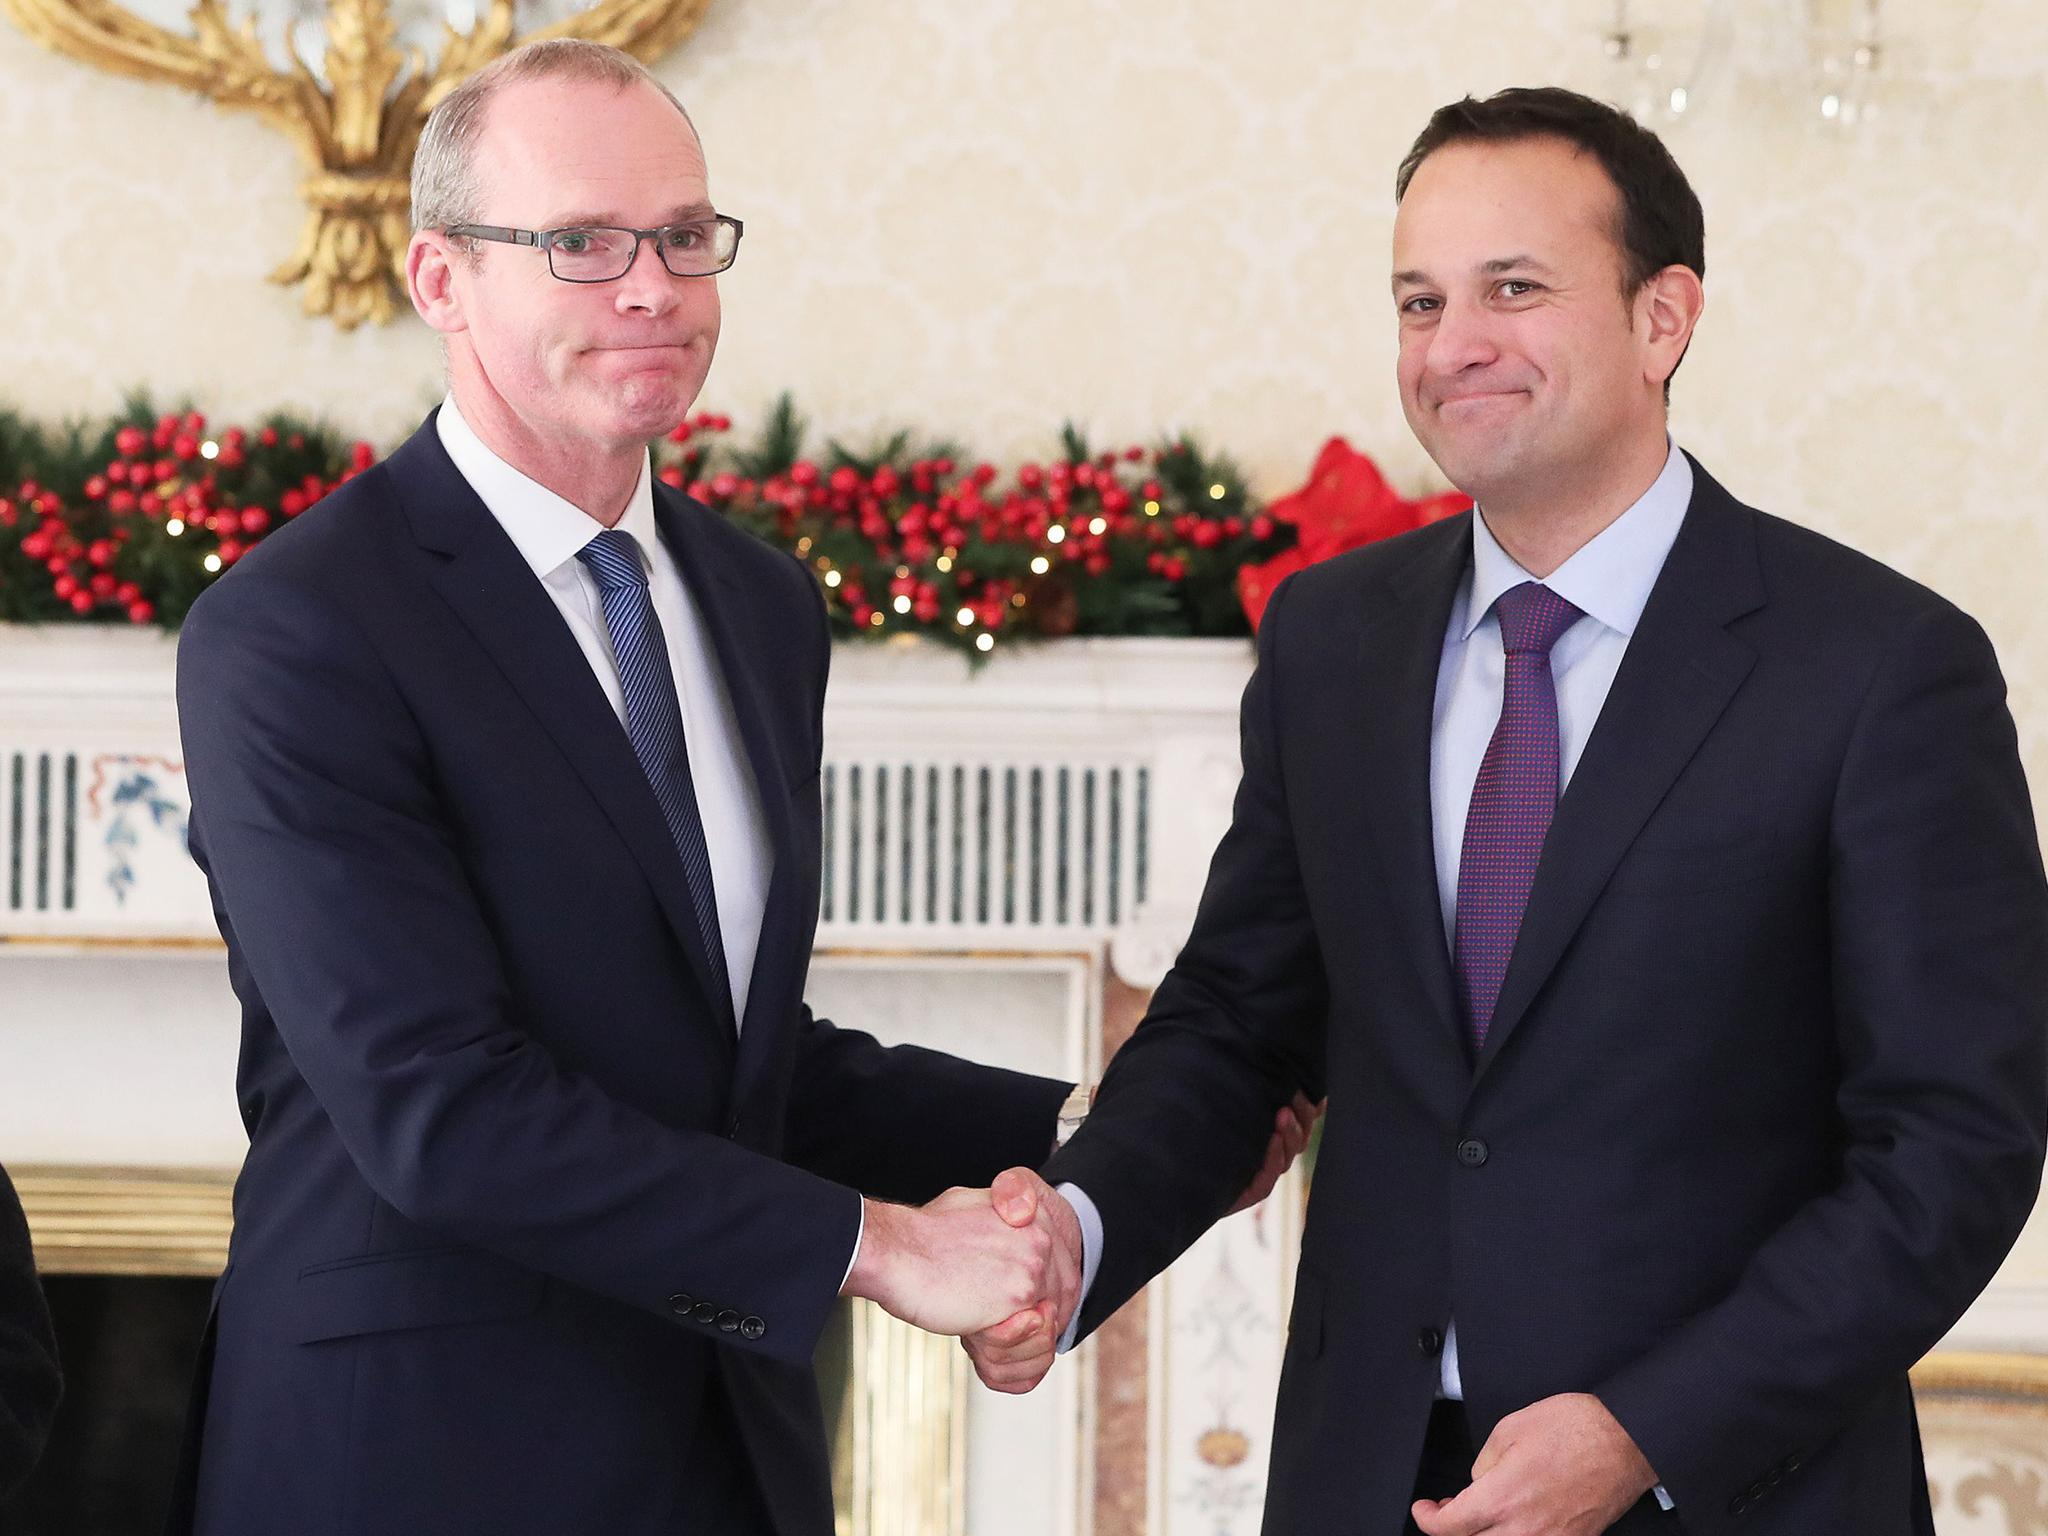 Ireland will demand limits on trade deal power to move Brexit talks on